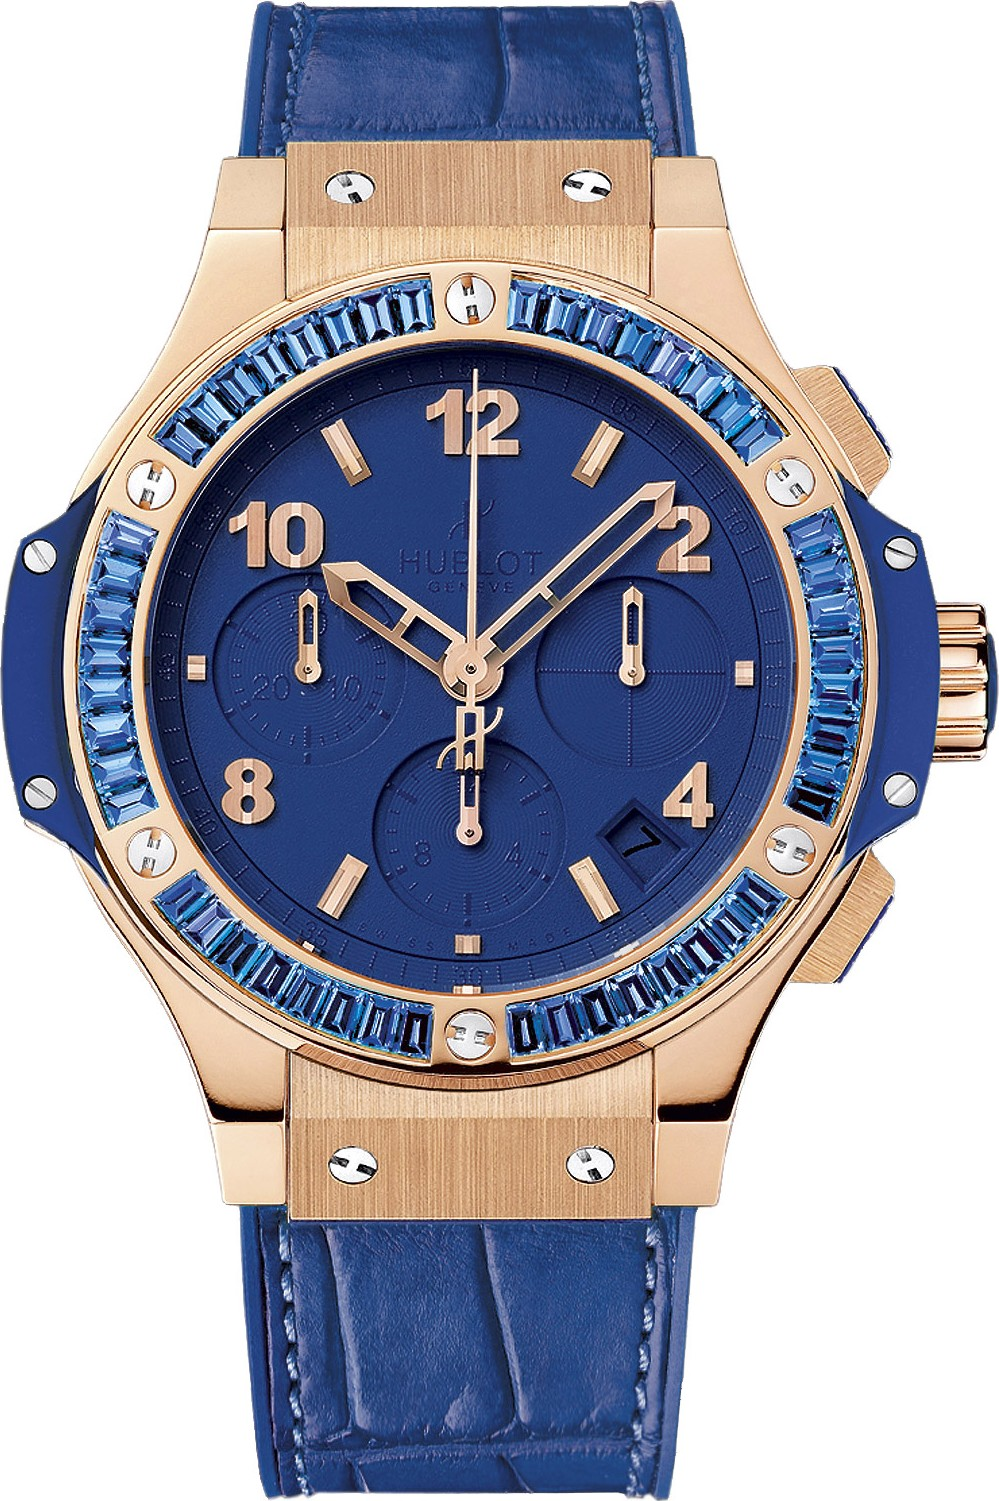 Hublot Big Bang Tutti Frutti 341.PL.5190.LR.1901 41mm